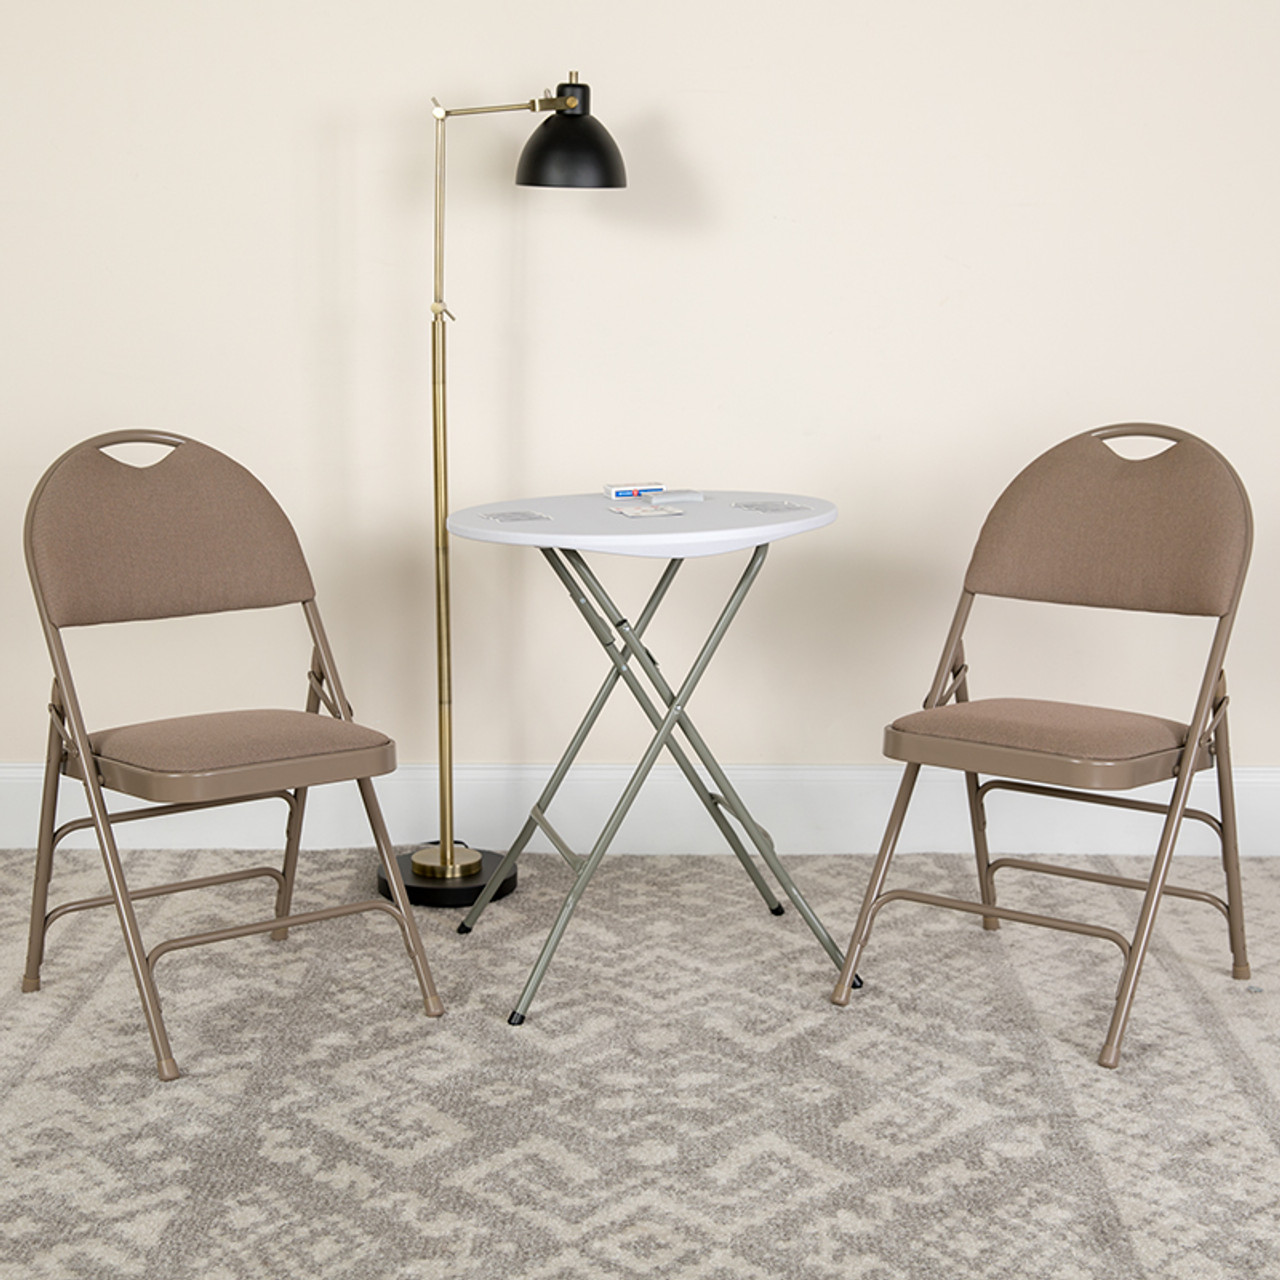 Large Metal Folding Chairs